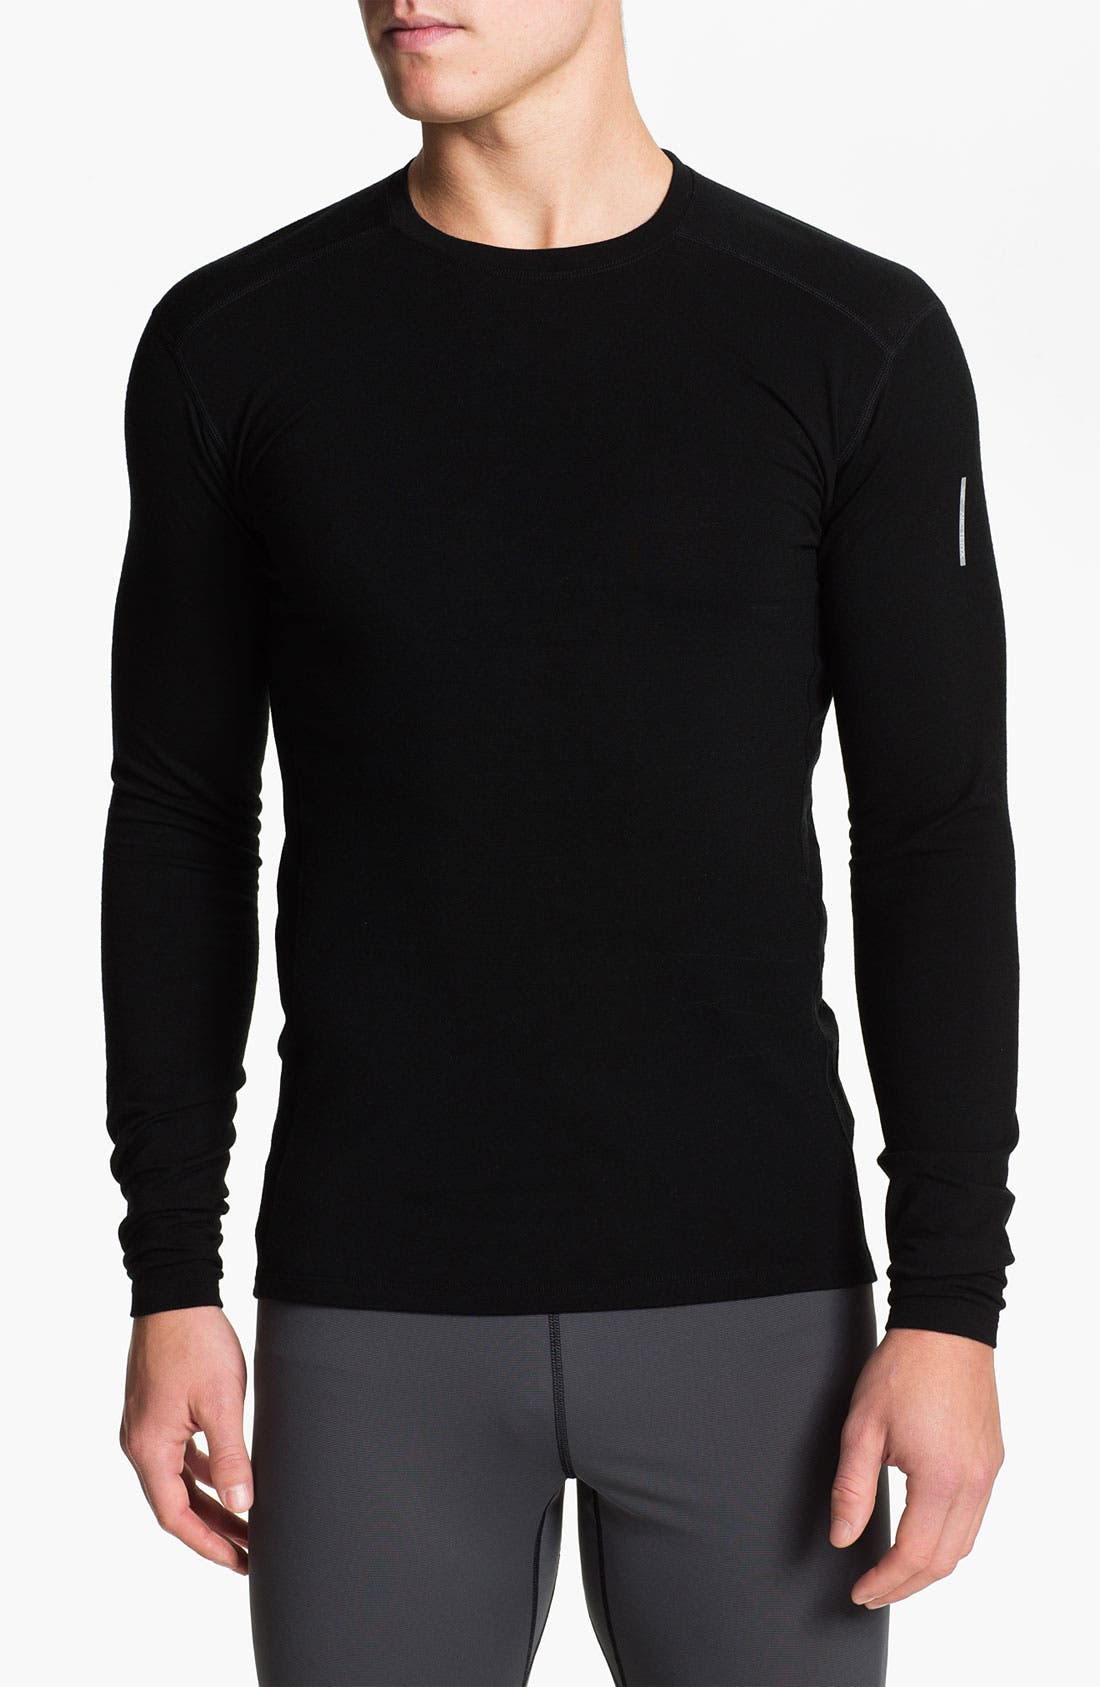 Alternate Image 1 Selected - Arc'teryx 'Eon SLW' Long Sleeve T-Shirt (Online Only)